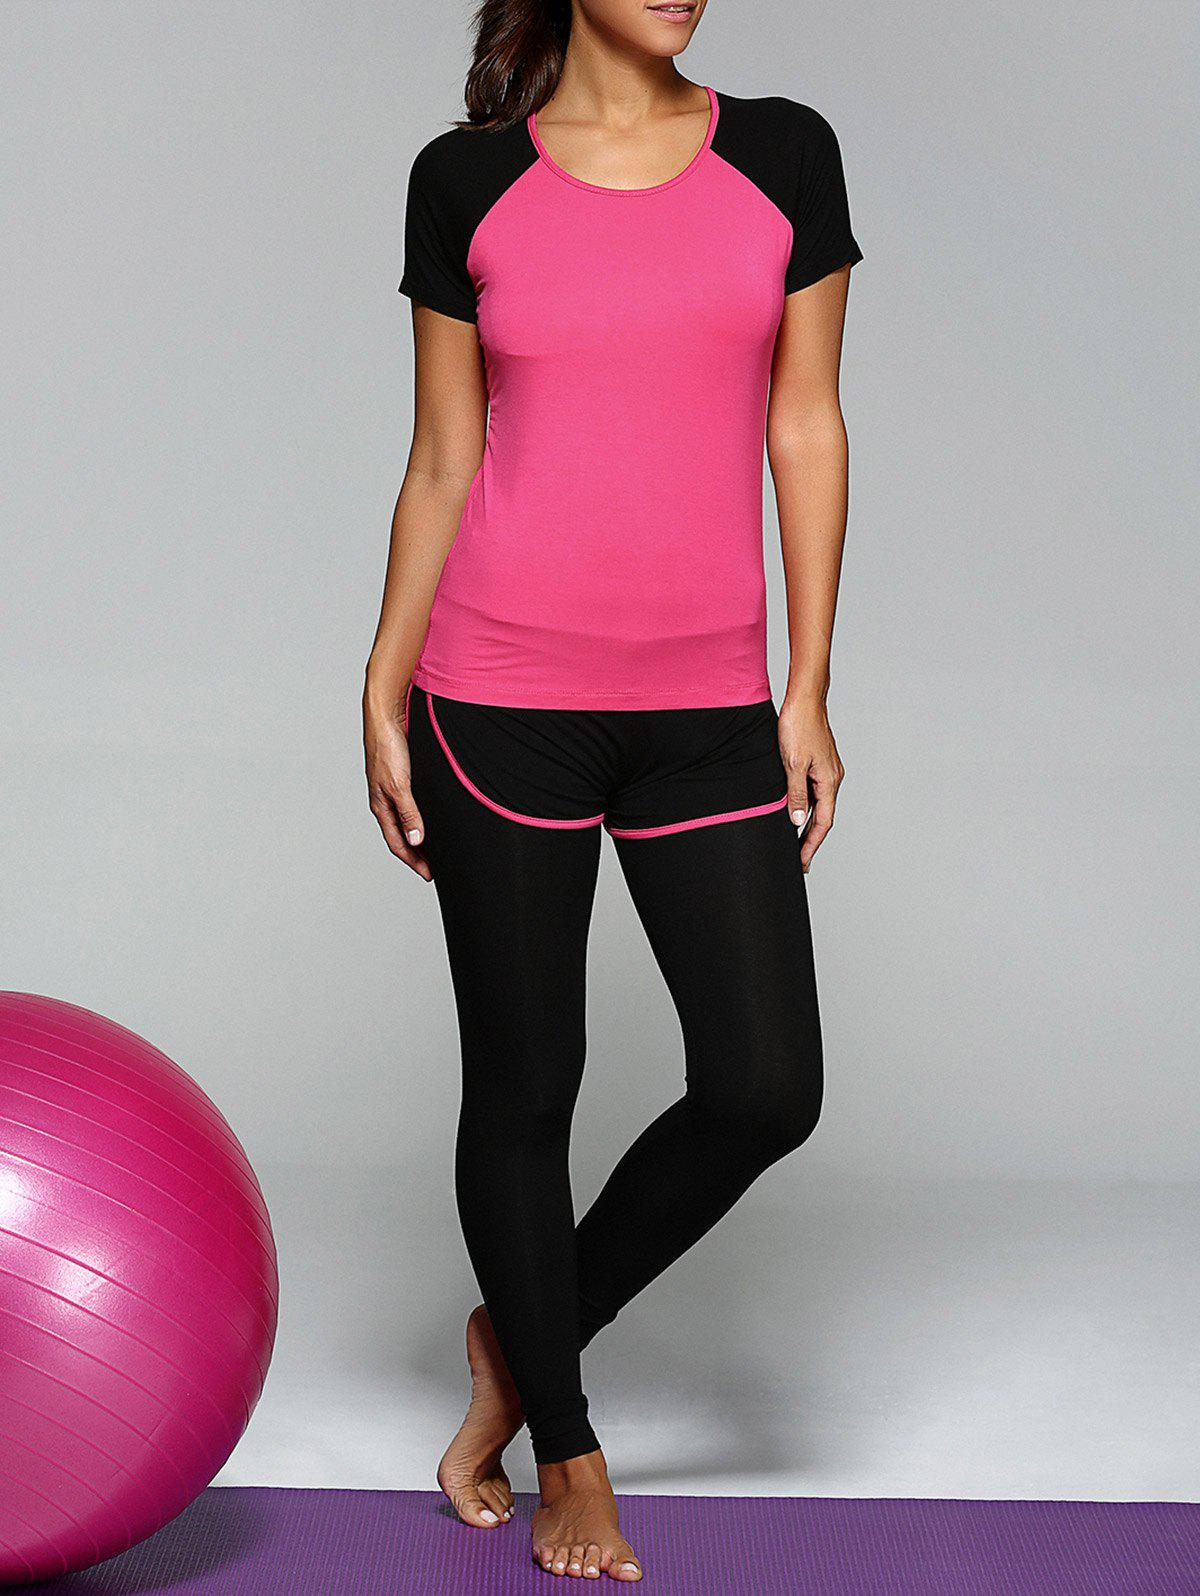 Scoop Neck Top and Bicolor Leggings Suit - ROSE RED 2XL